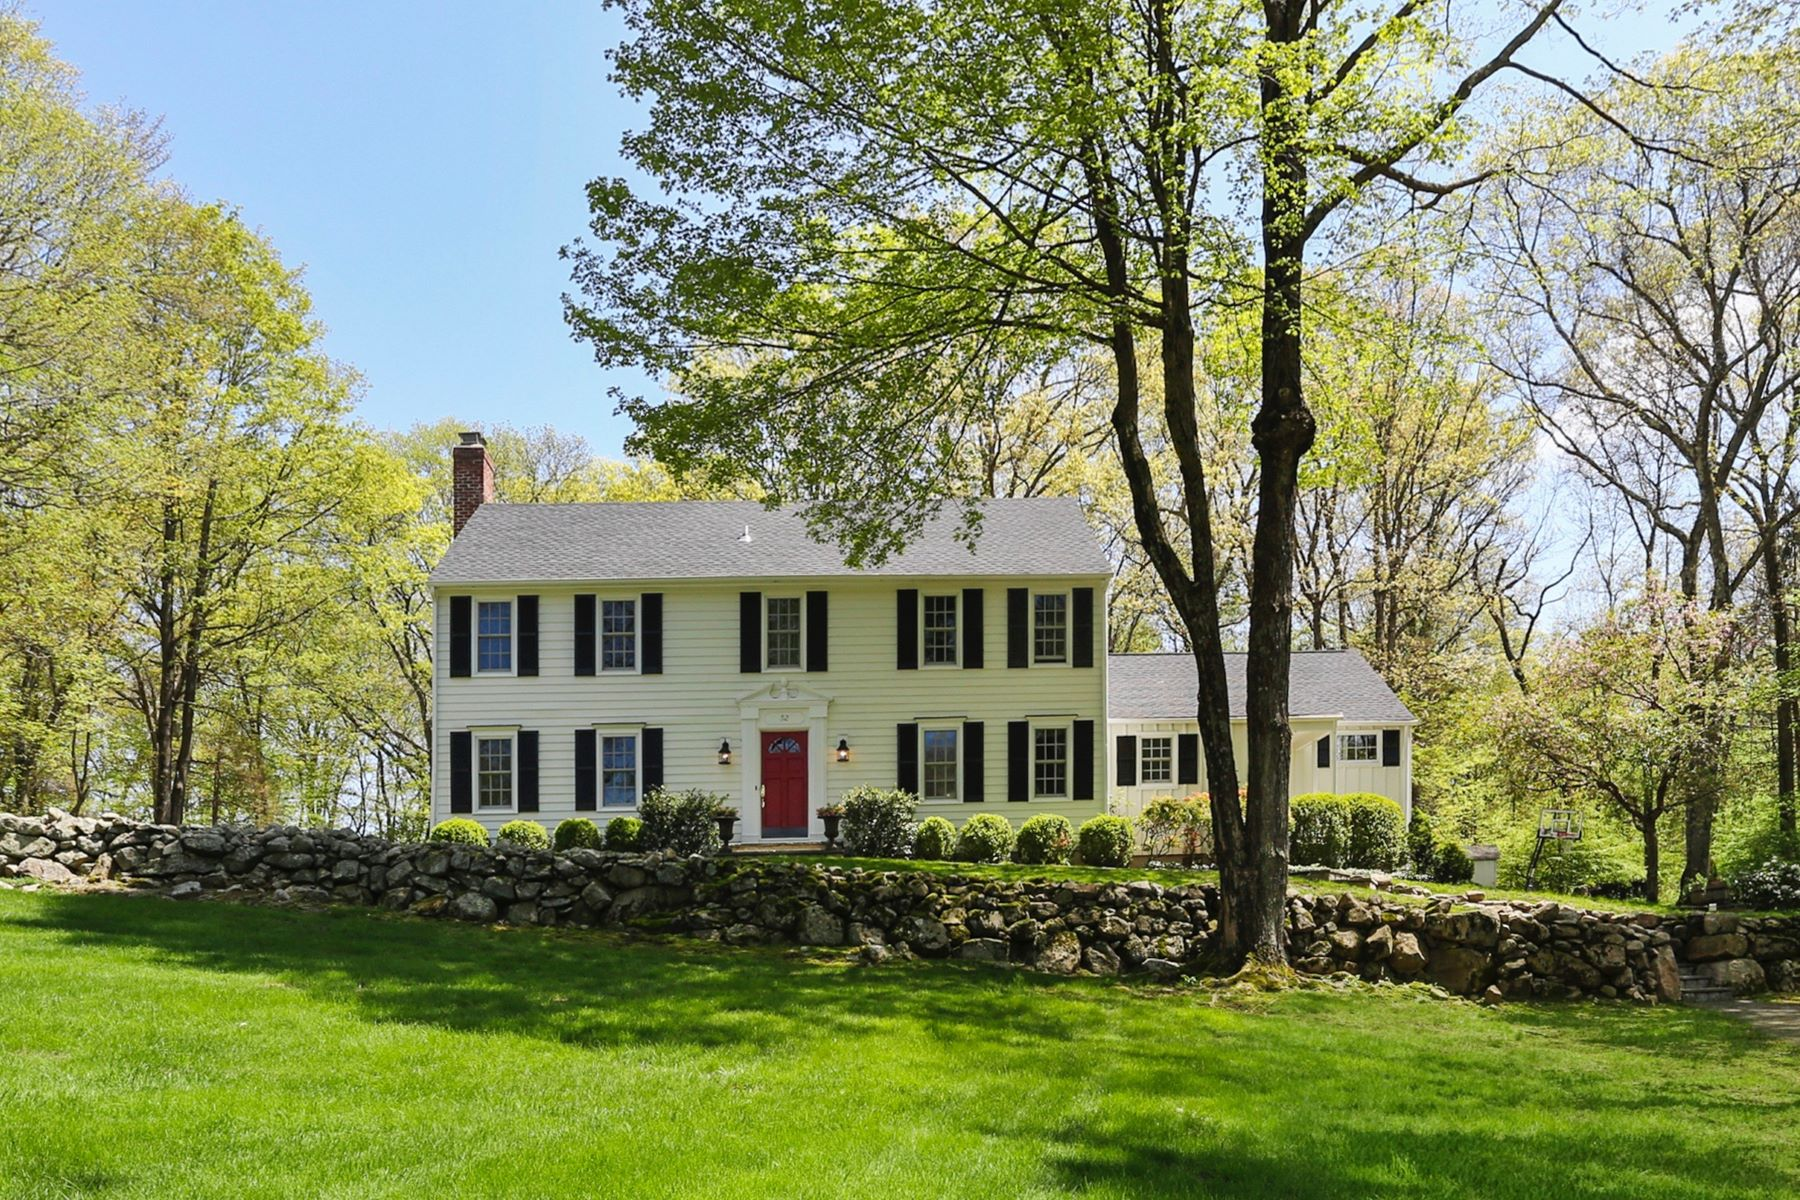 Single Family Homes for Sale at 52 Edgewater Drive Wilton, Connecticut 06897 United States